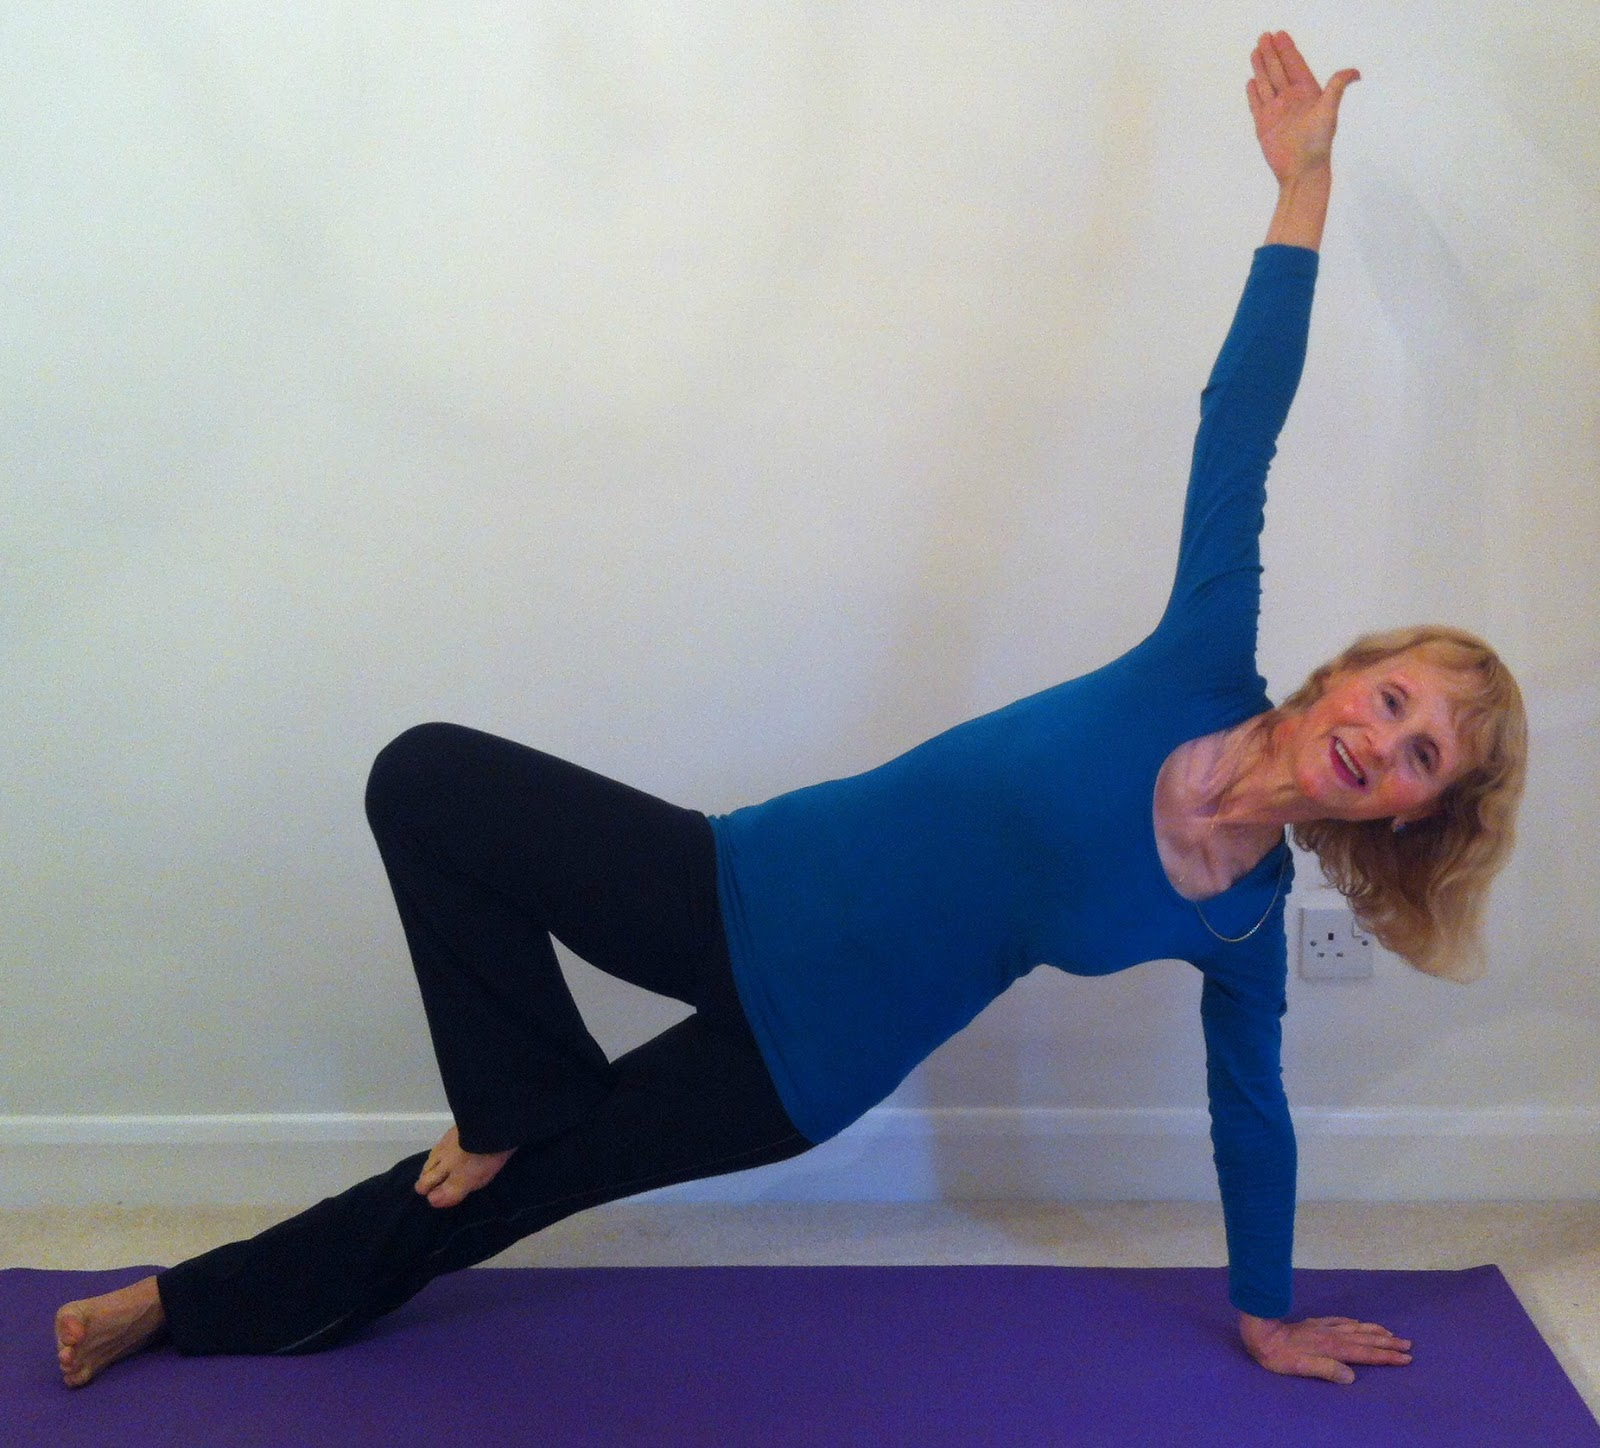 43 Plus and All is Well: This week on Flexiladiesyoga